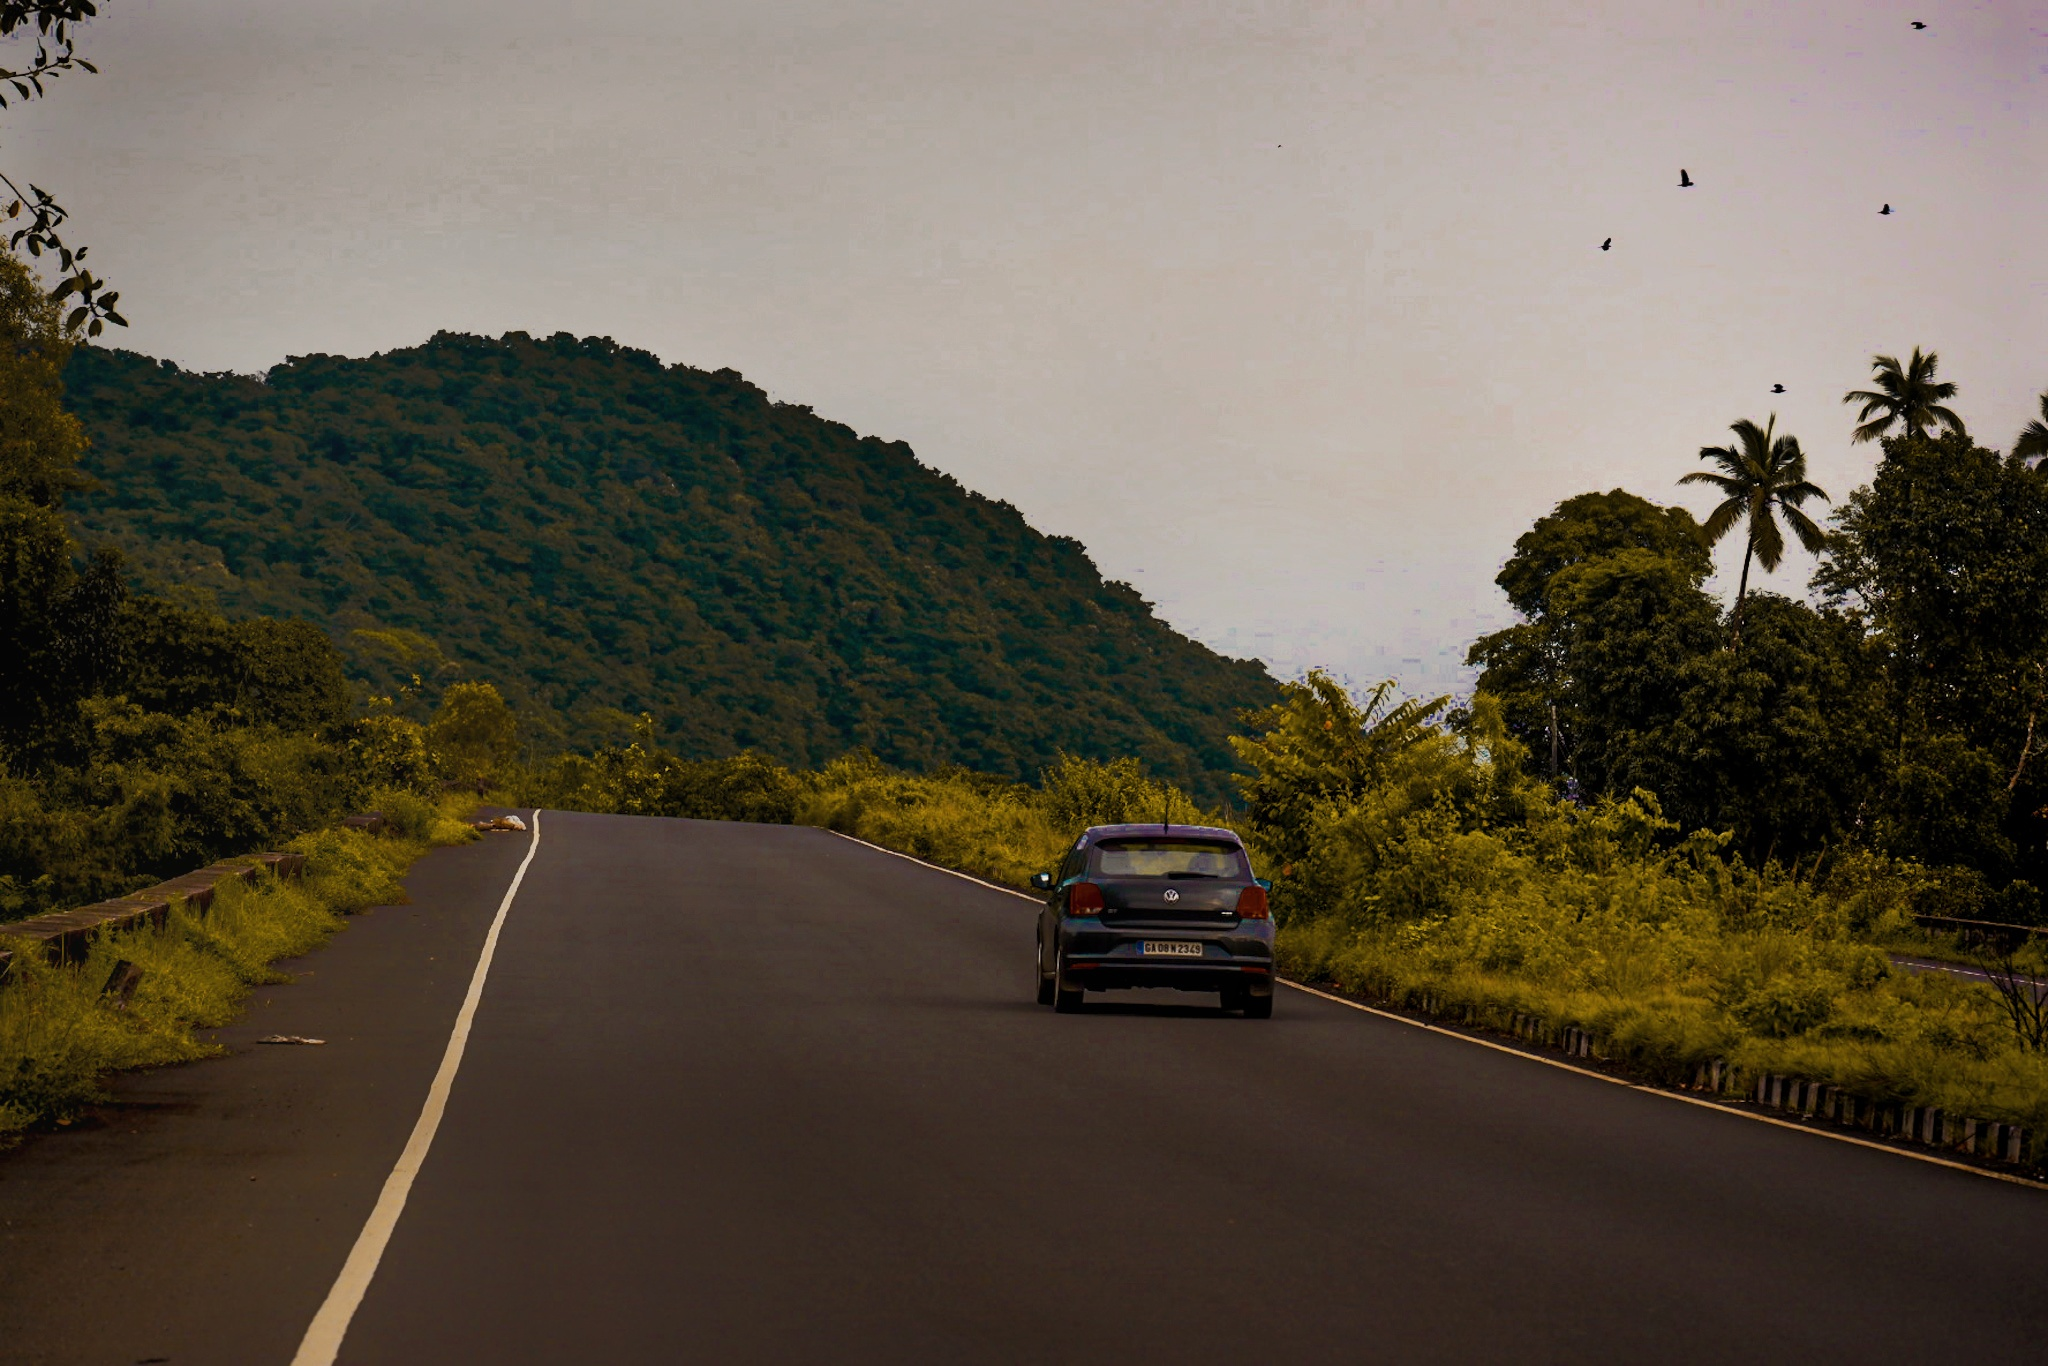 car on a hilly road